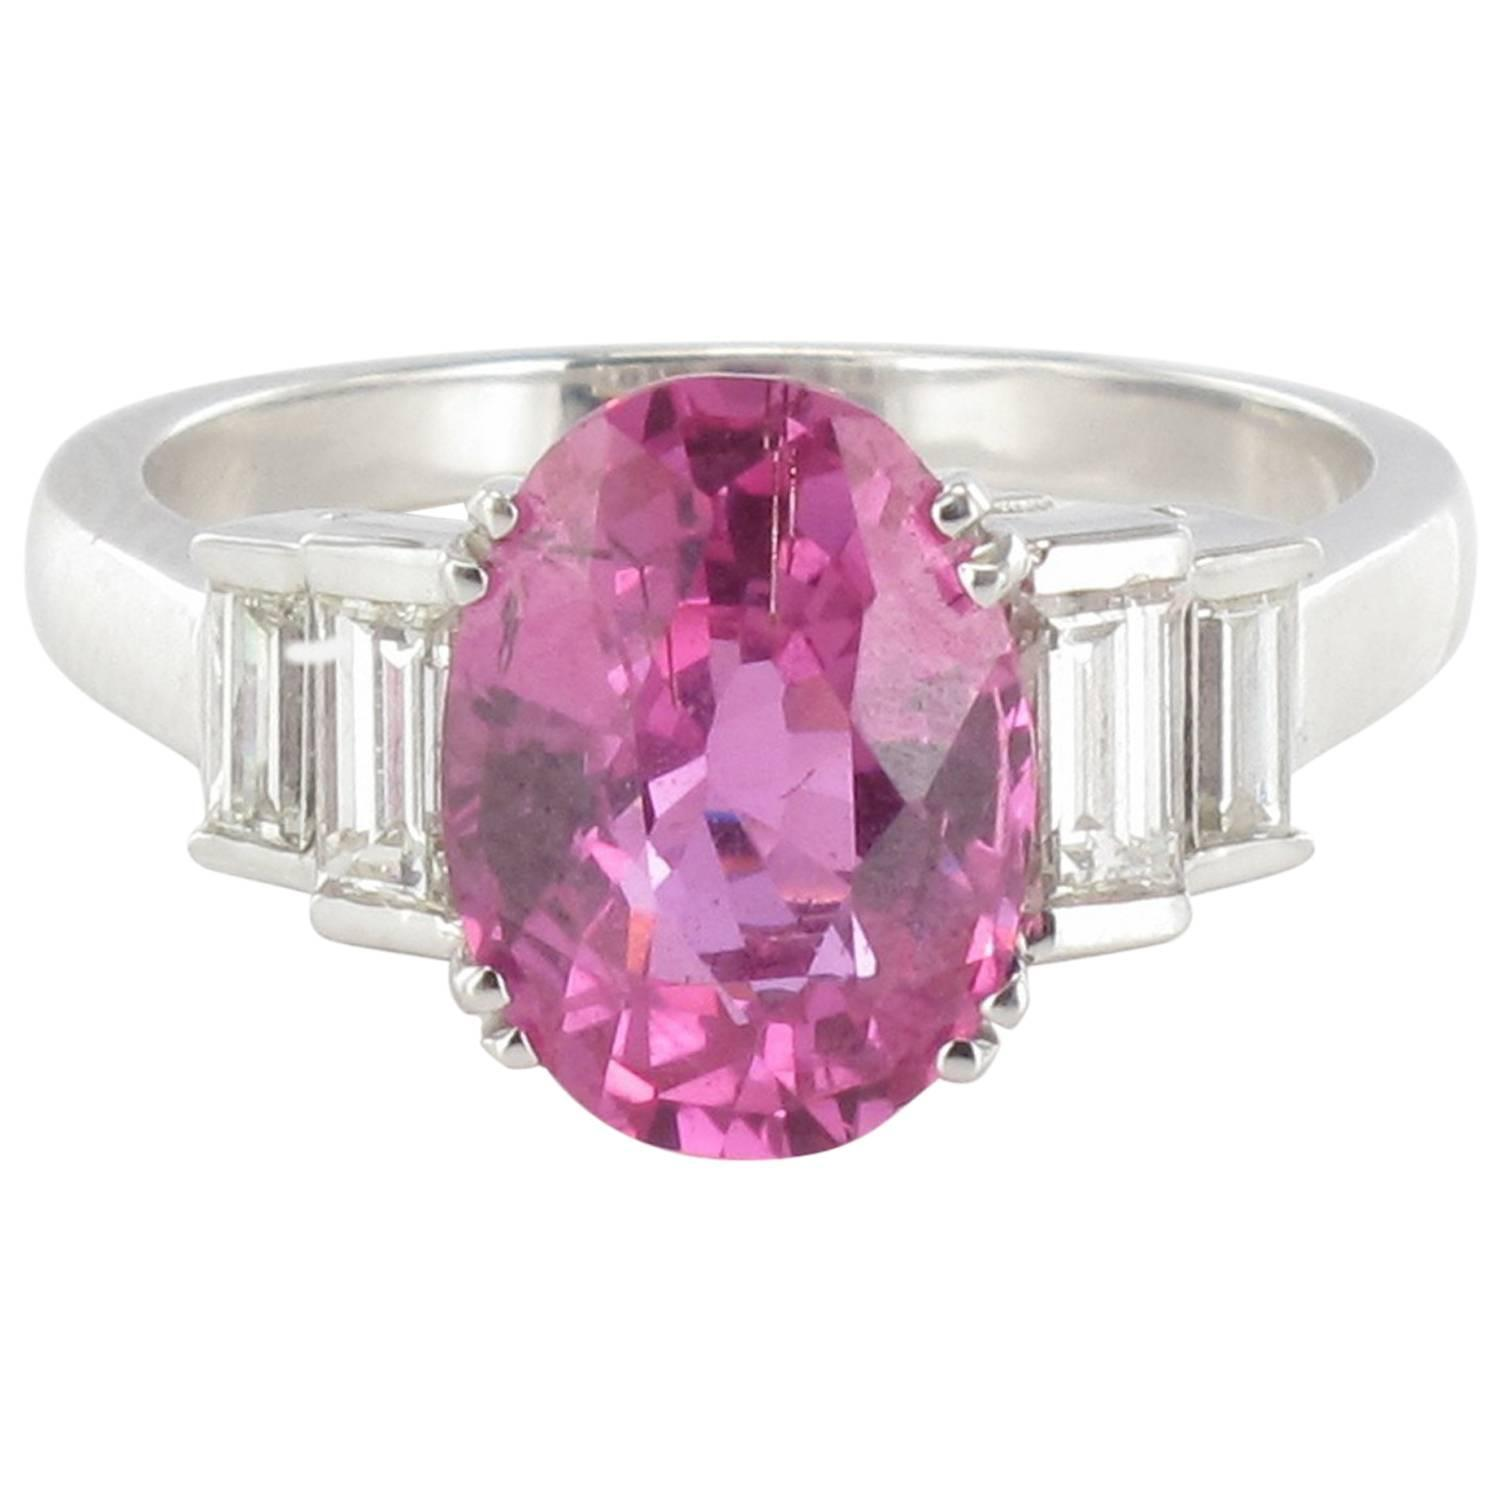 Modern 3.55 carat Pink Sapphire and Baguette Cut Diamond Ring For ...